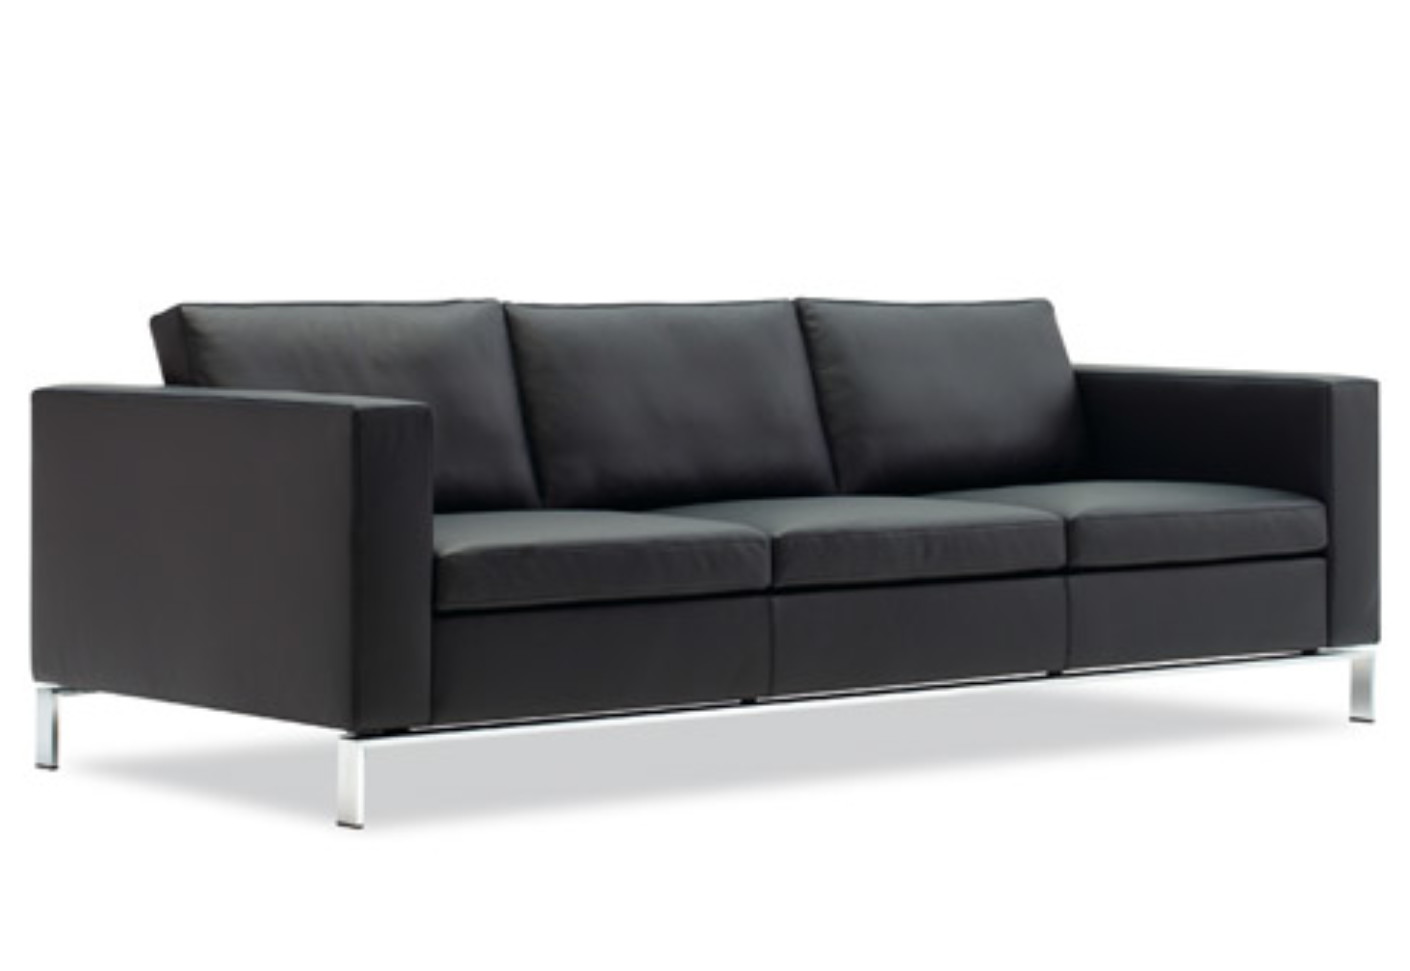 foster 503 sofa by walter knoll stylepark. Black Bedroom Furniture Sets. Home Design Ideas